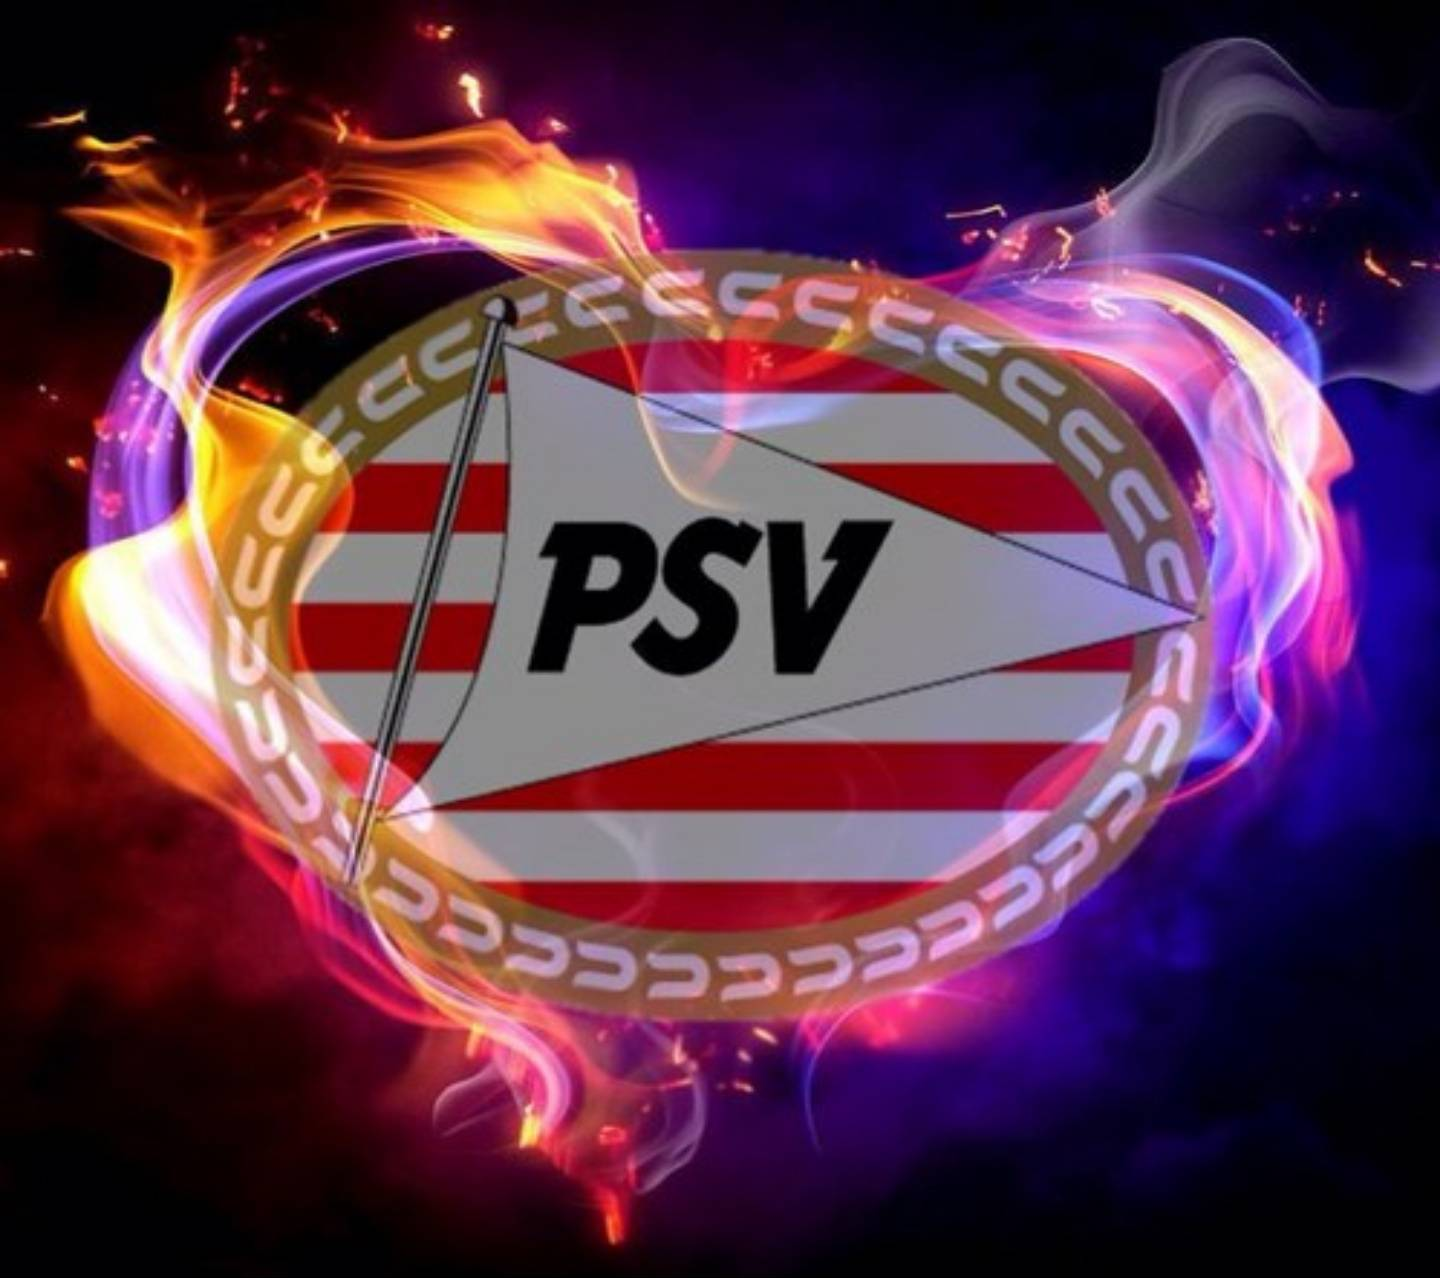 PSV Logo Wallpaper by Stinos - d2 - Free on ZEDGE™